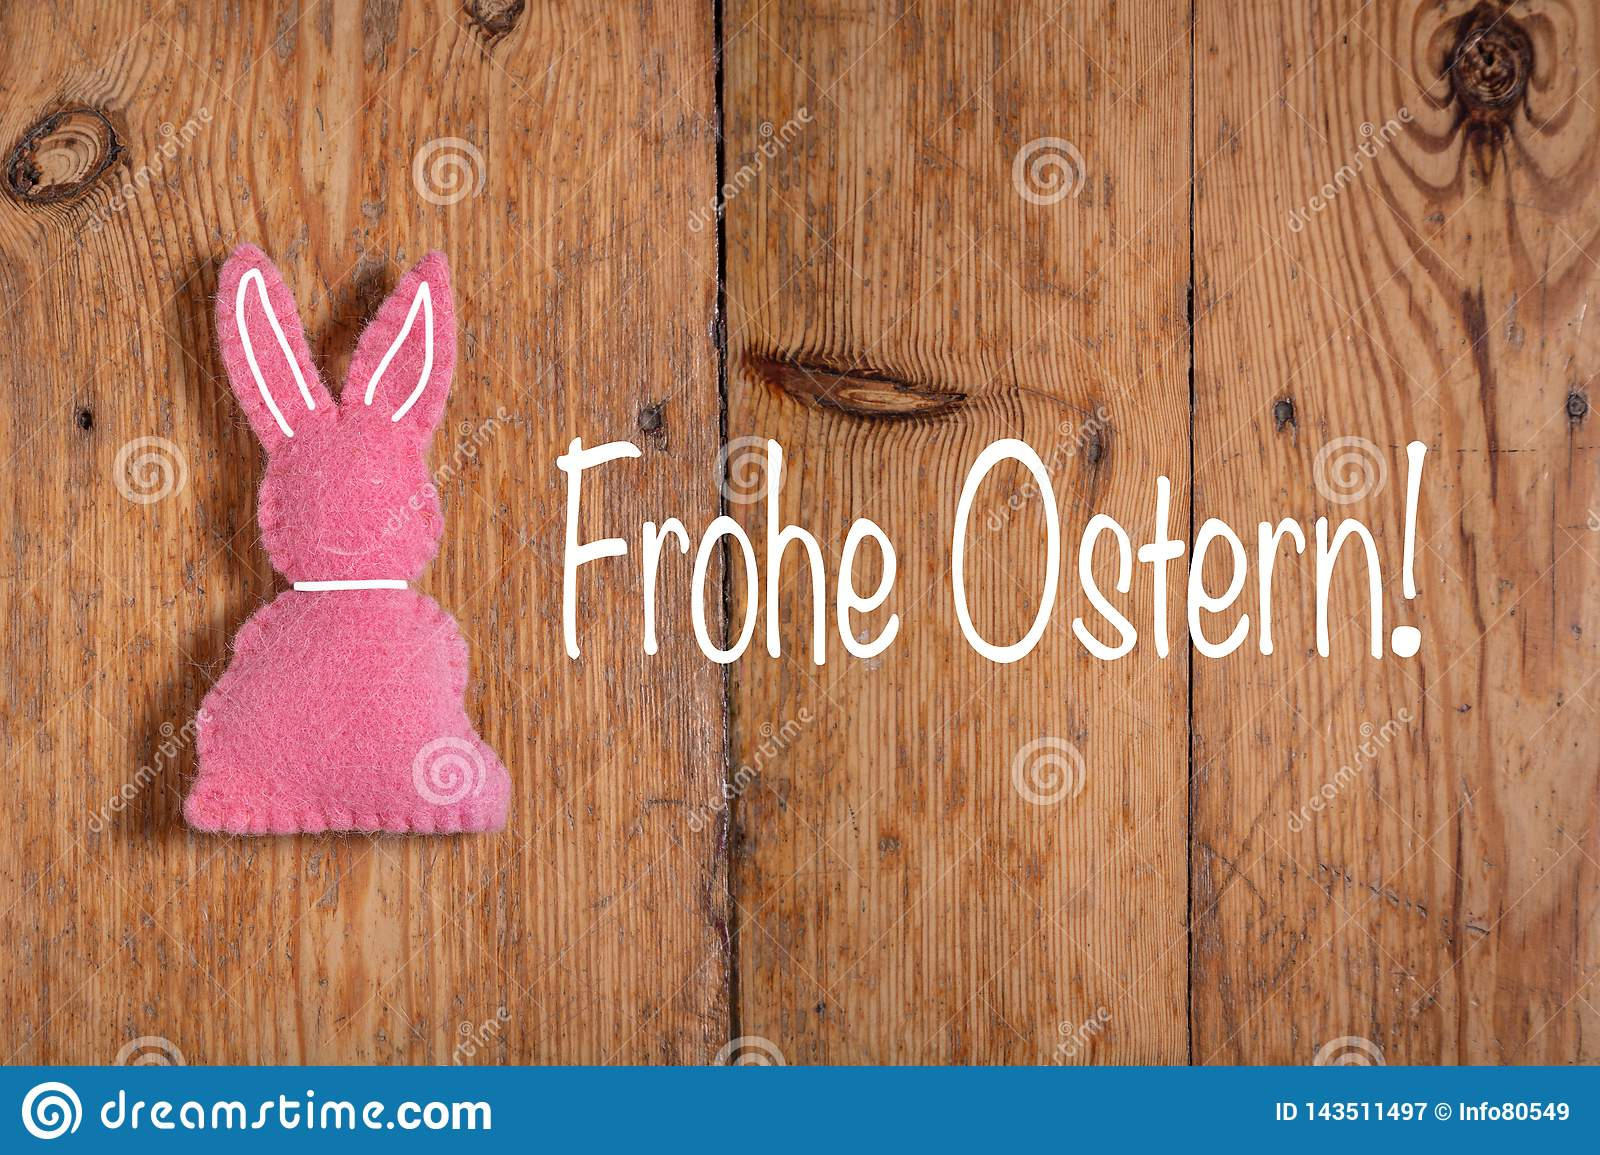 Pink Easter bunny with text `Frohe Ostern` and a wooden background. Translation: `Happy Easter`